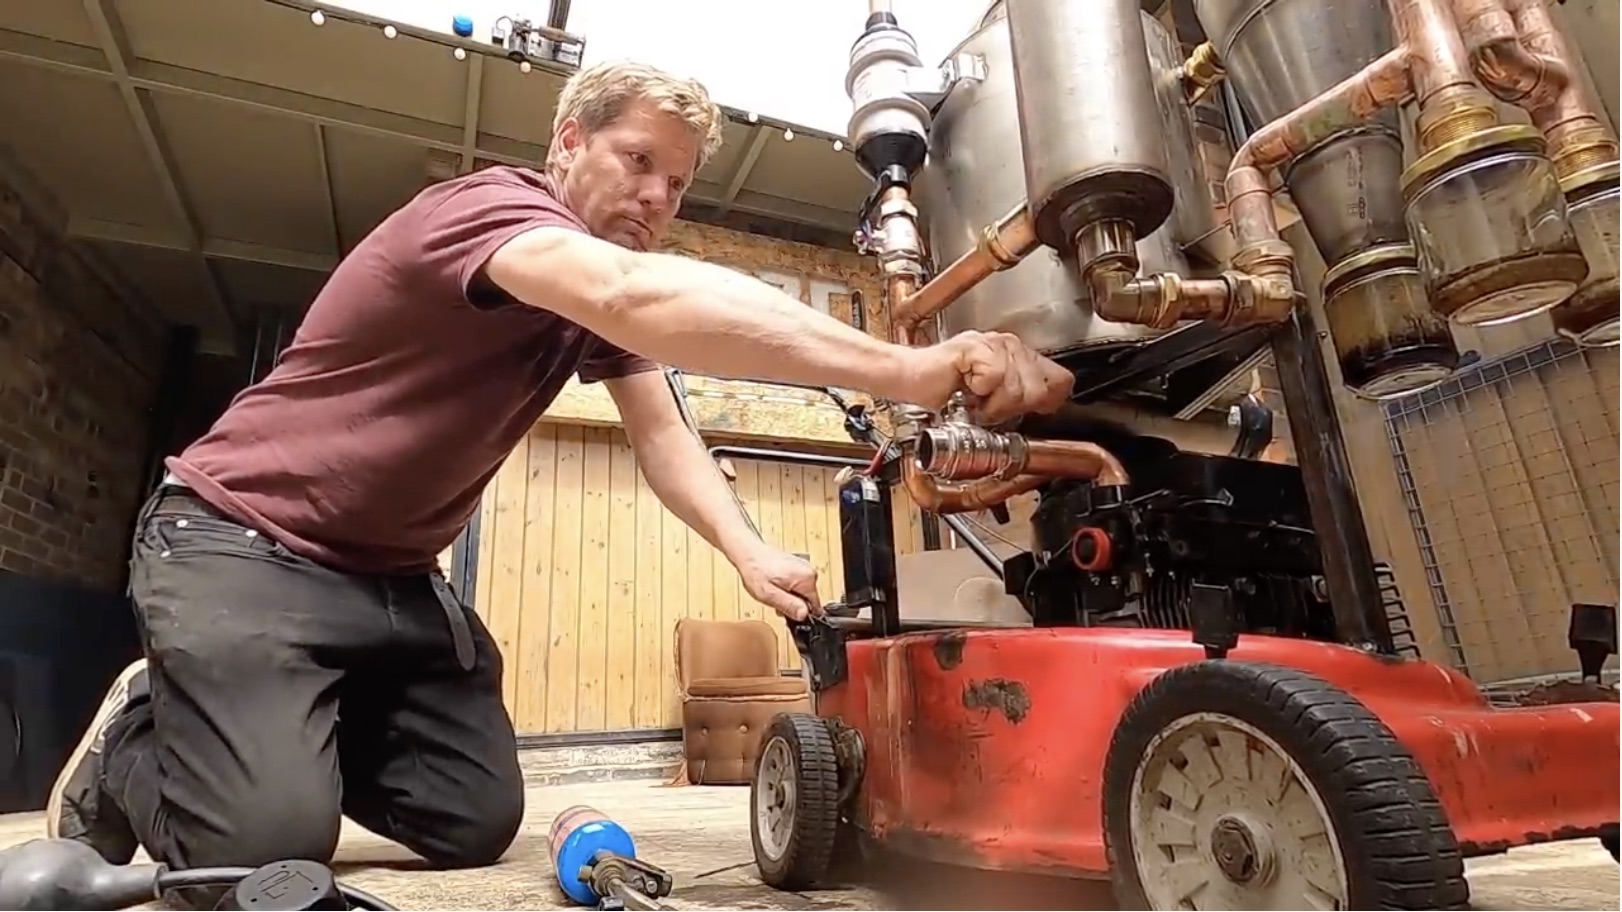 Wood-Fired Lawn Mower: Colin Furze Is At It Again!